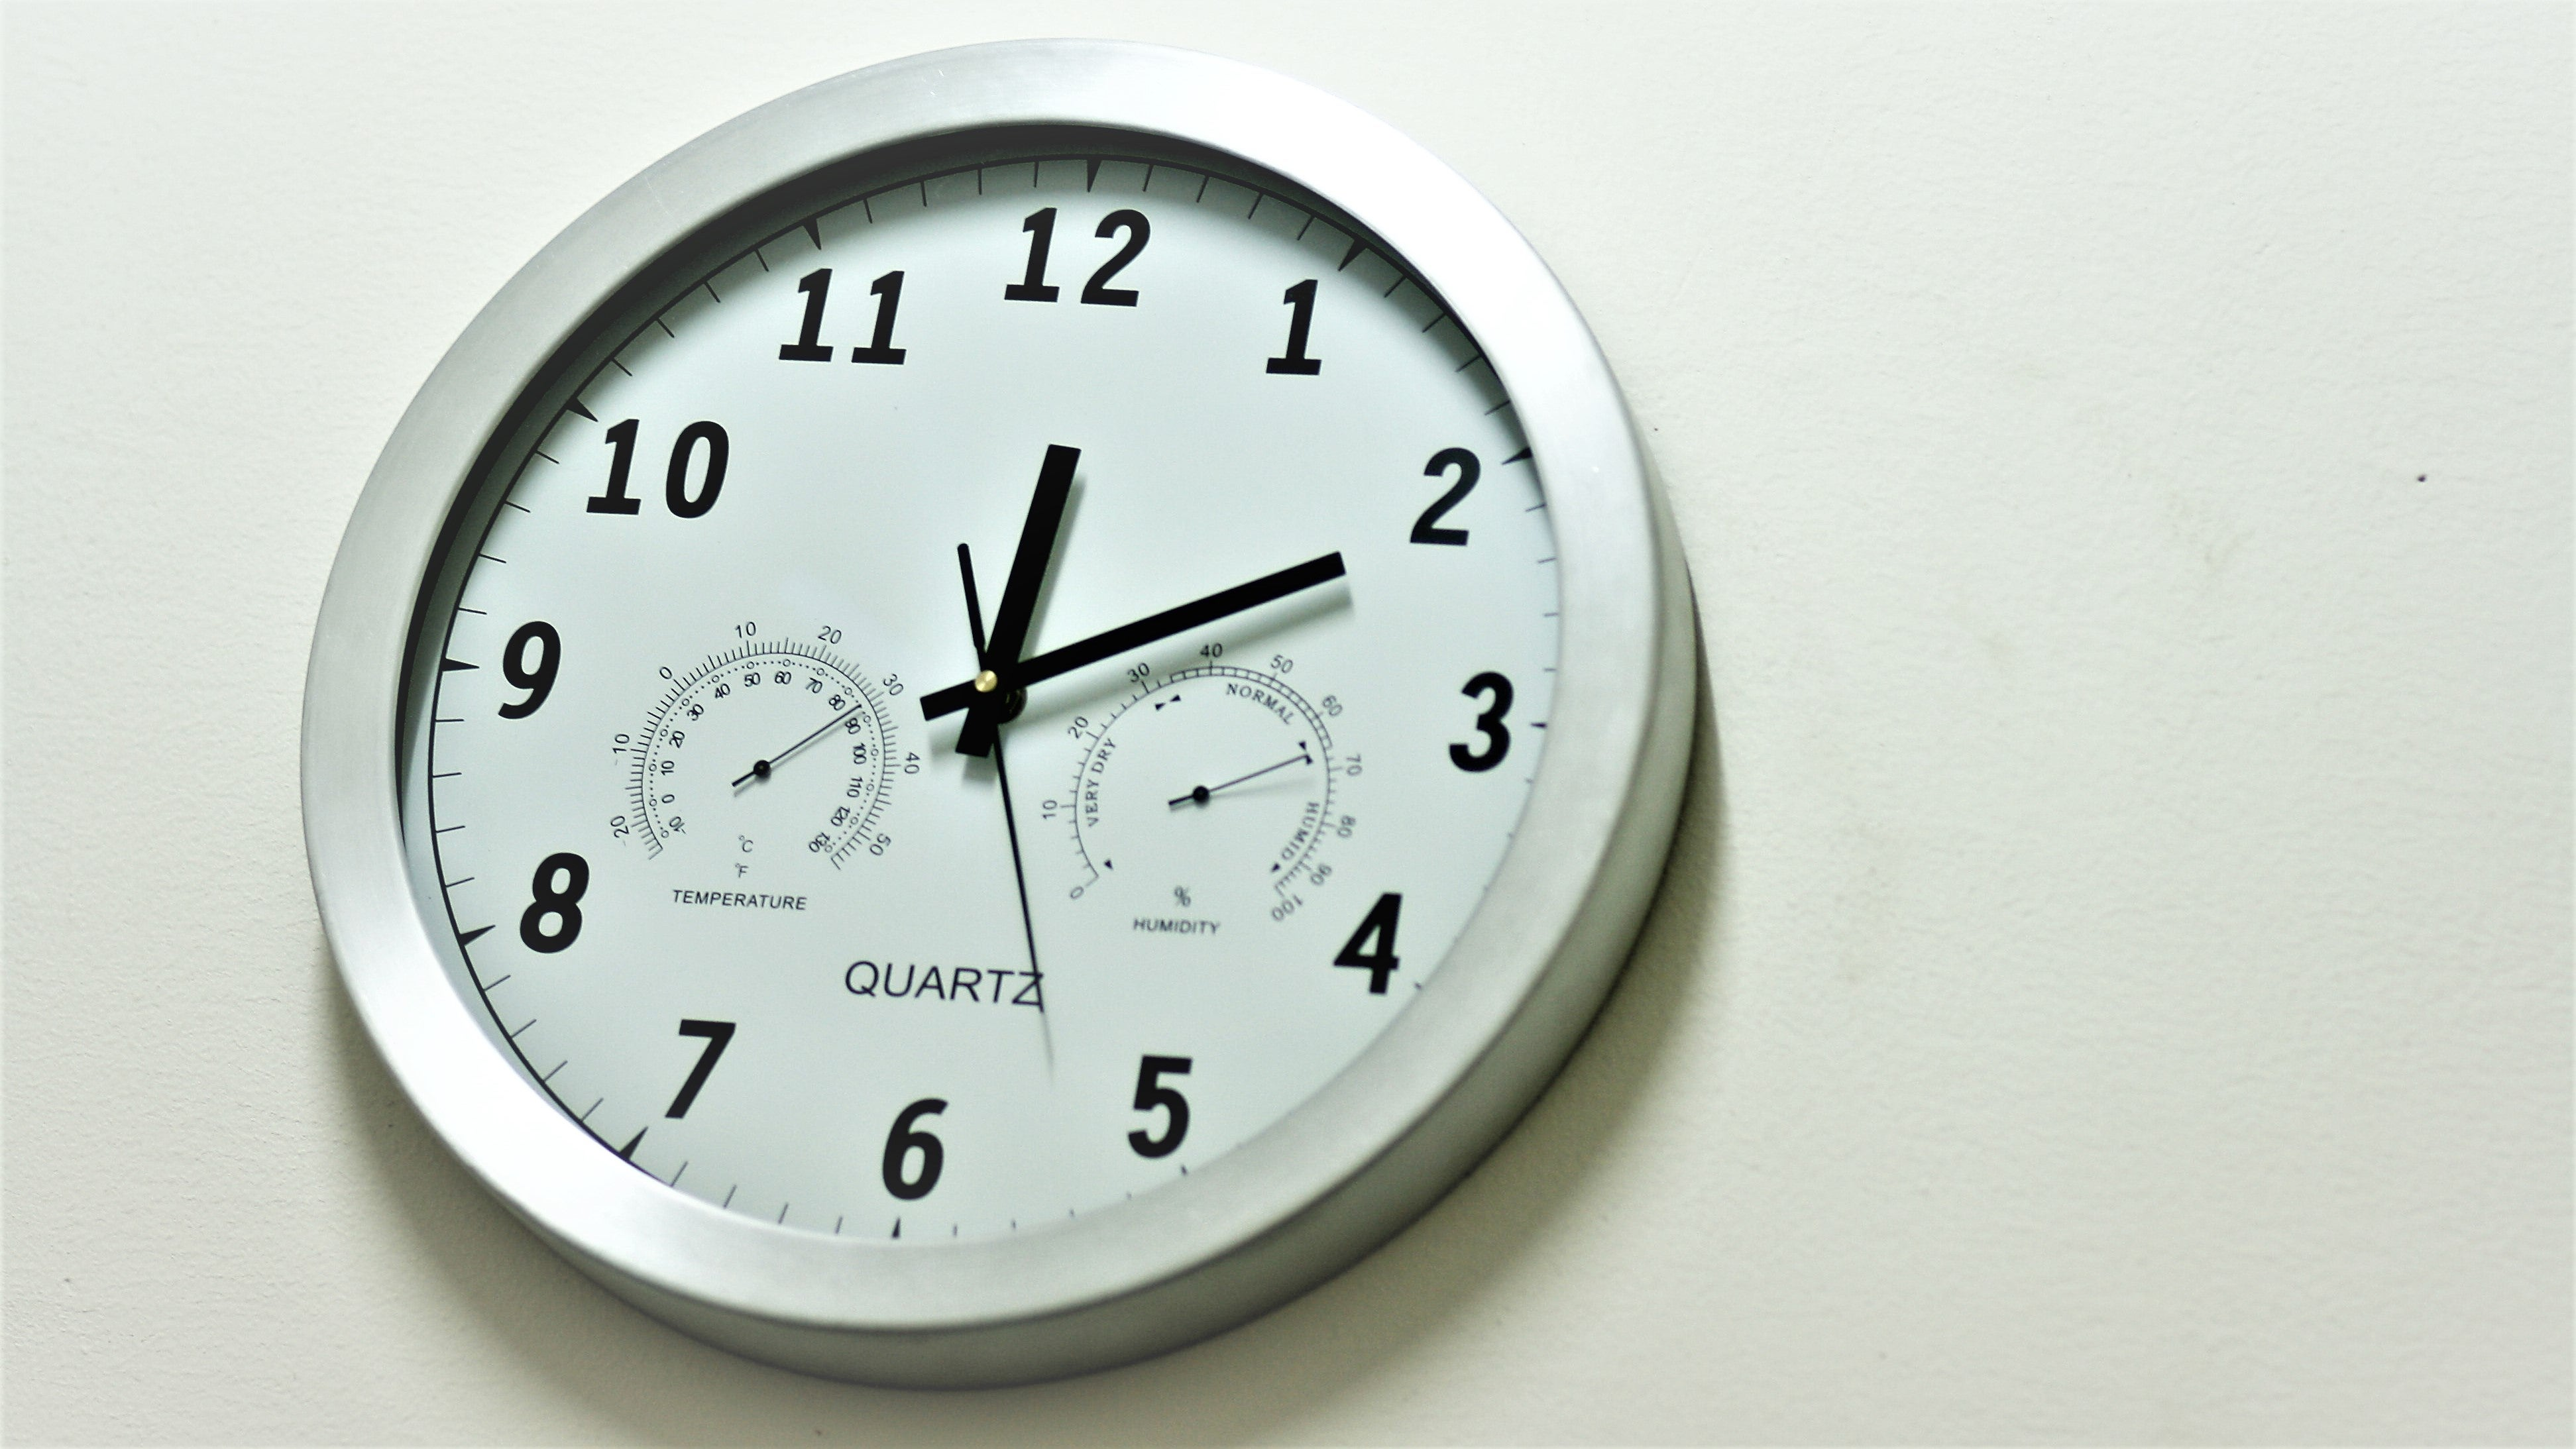 Why Time Seems To Stop When You Look At The Clock